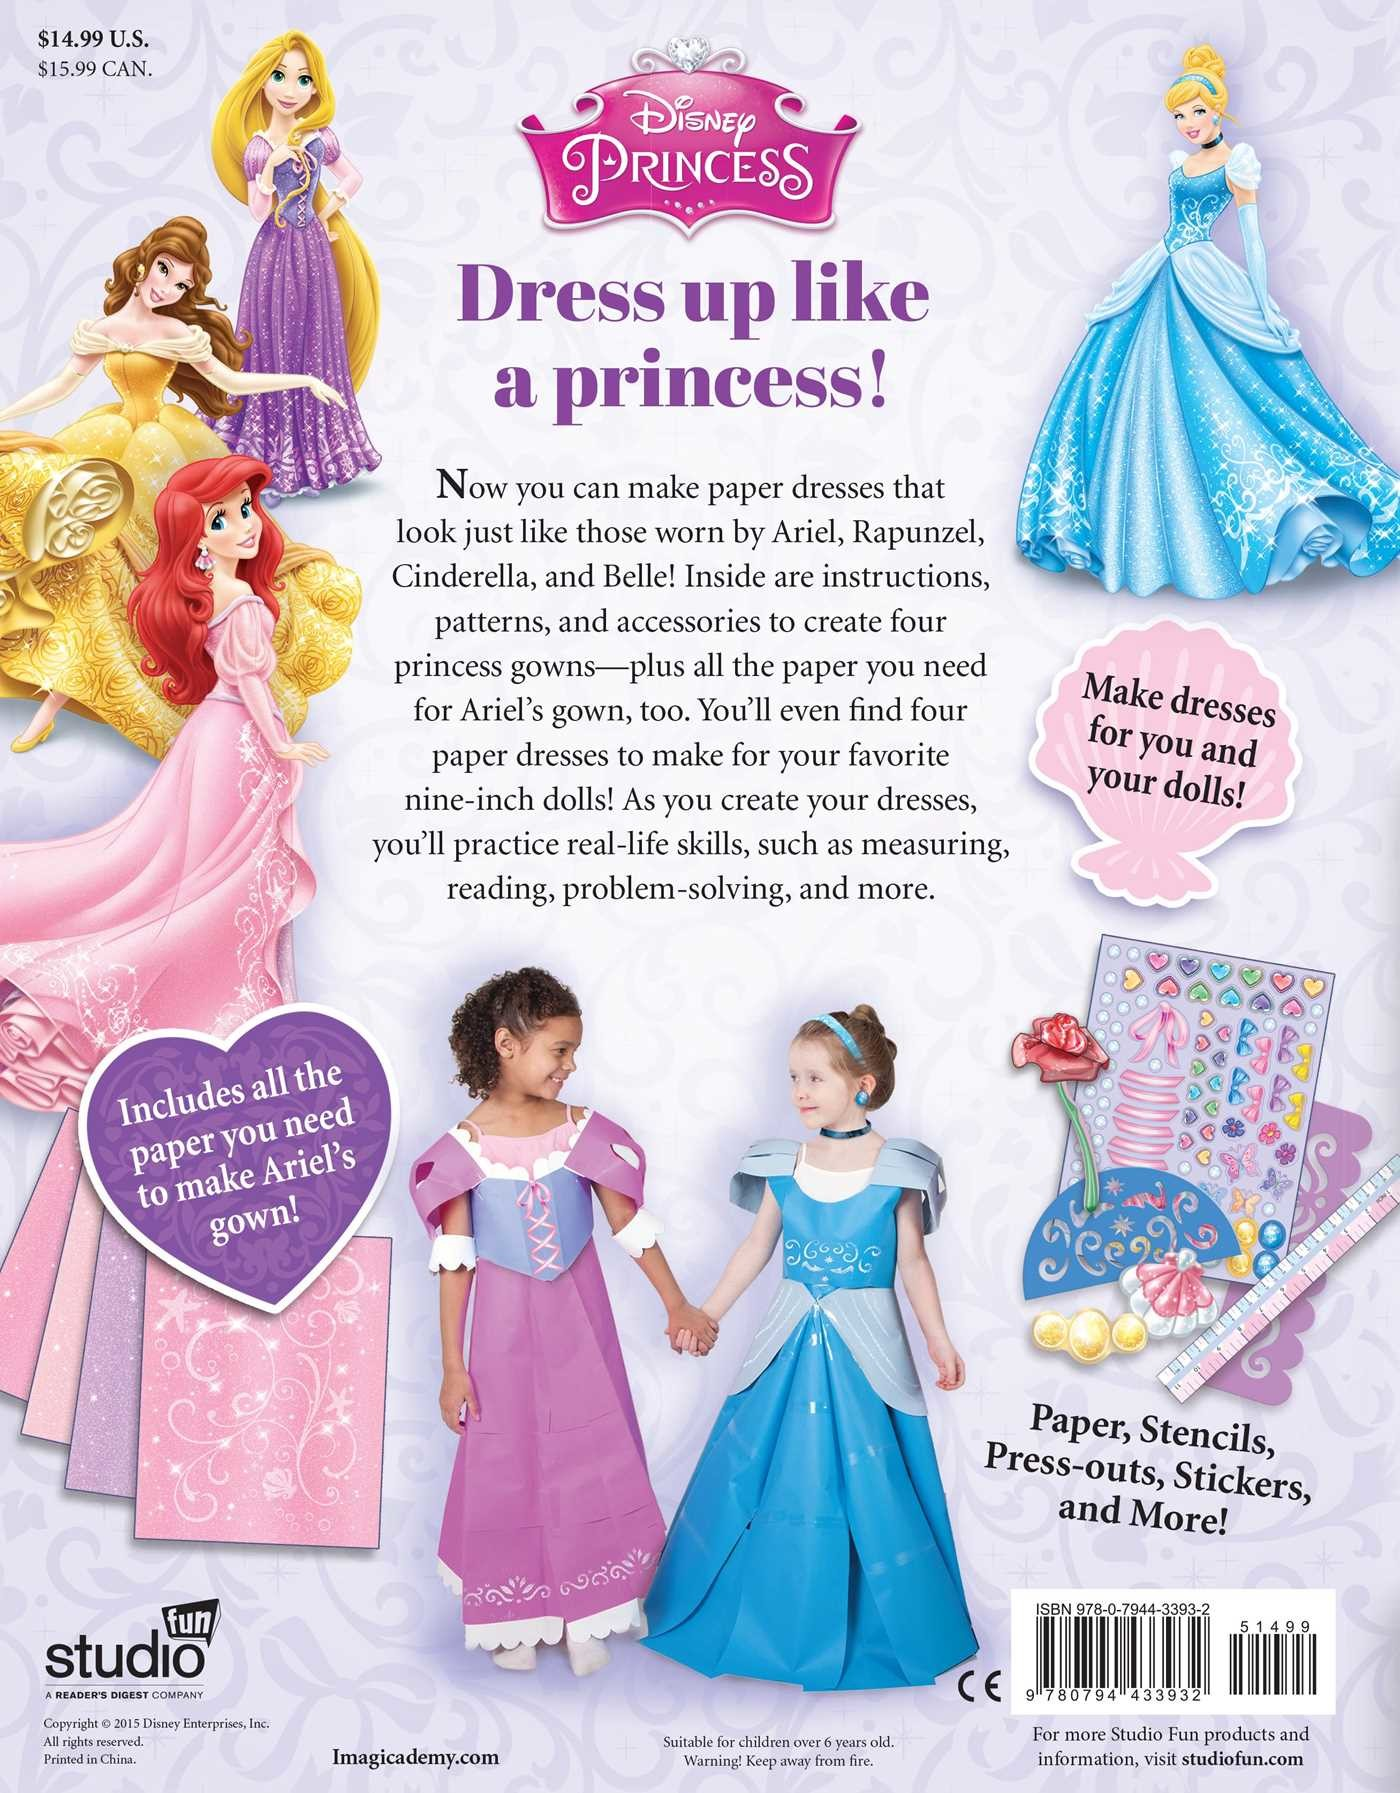 Disney imagicademy disney princess create your own paper dresses disney imagicademy disney princess create your own paper dresses 978079443393204 altavistaventures Image collections